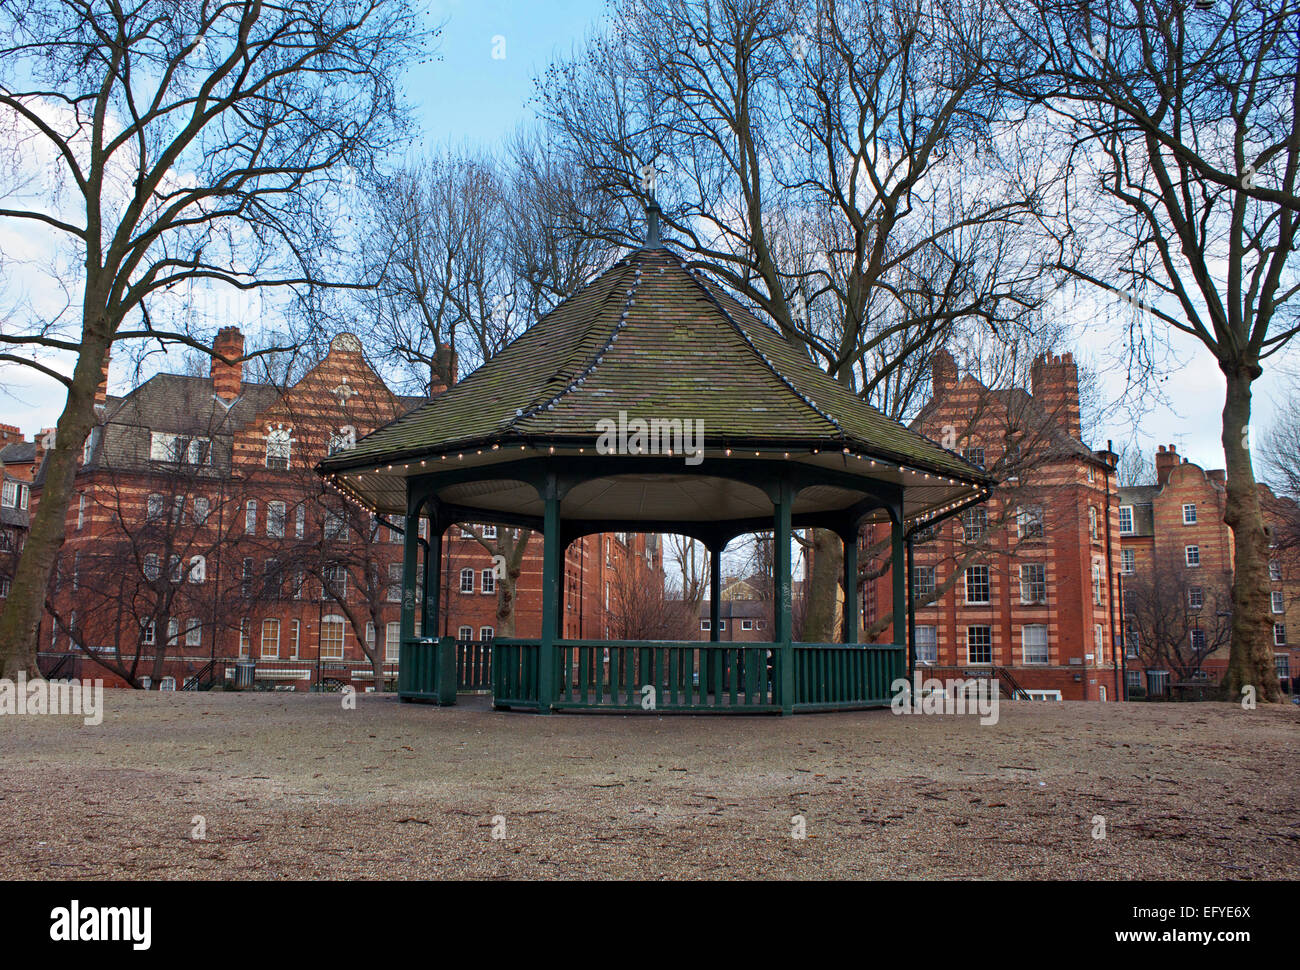 Bandstand in Arnold Circus, London, England - Stock Image